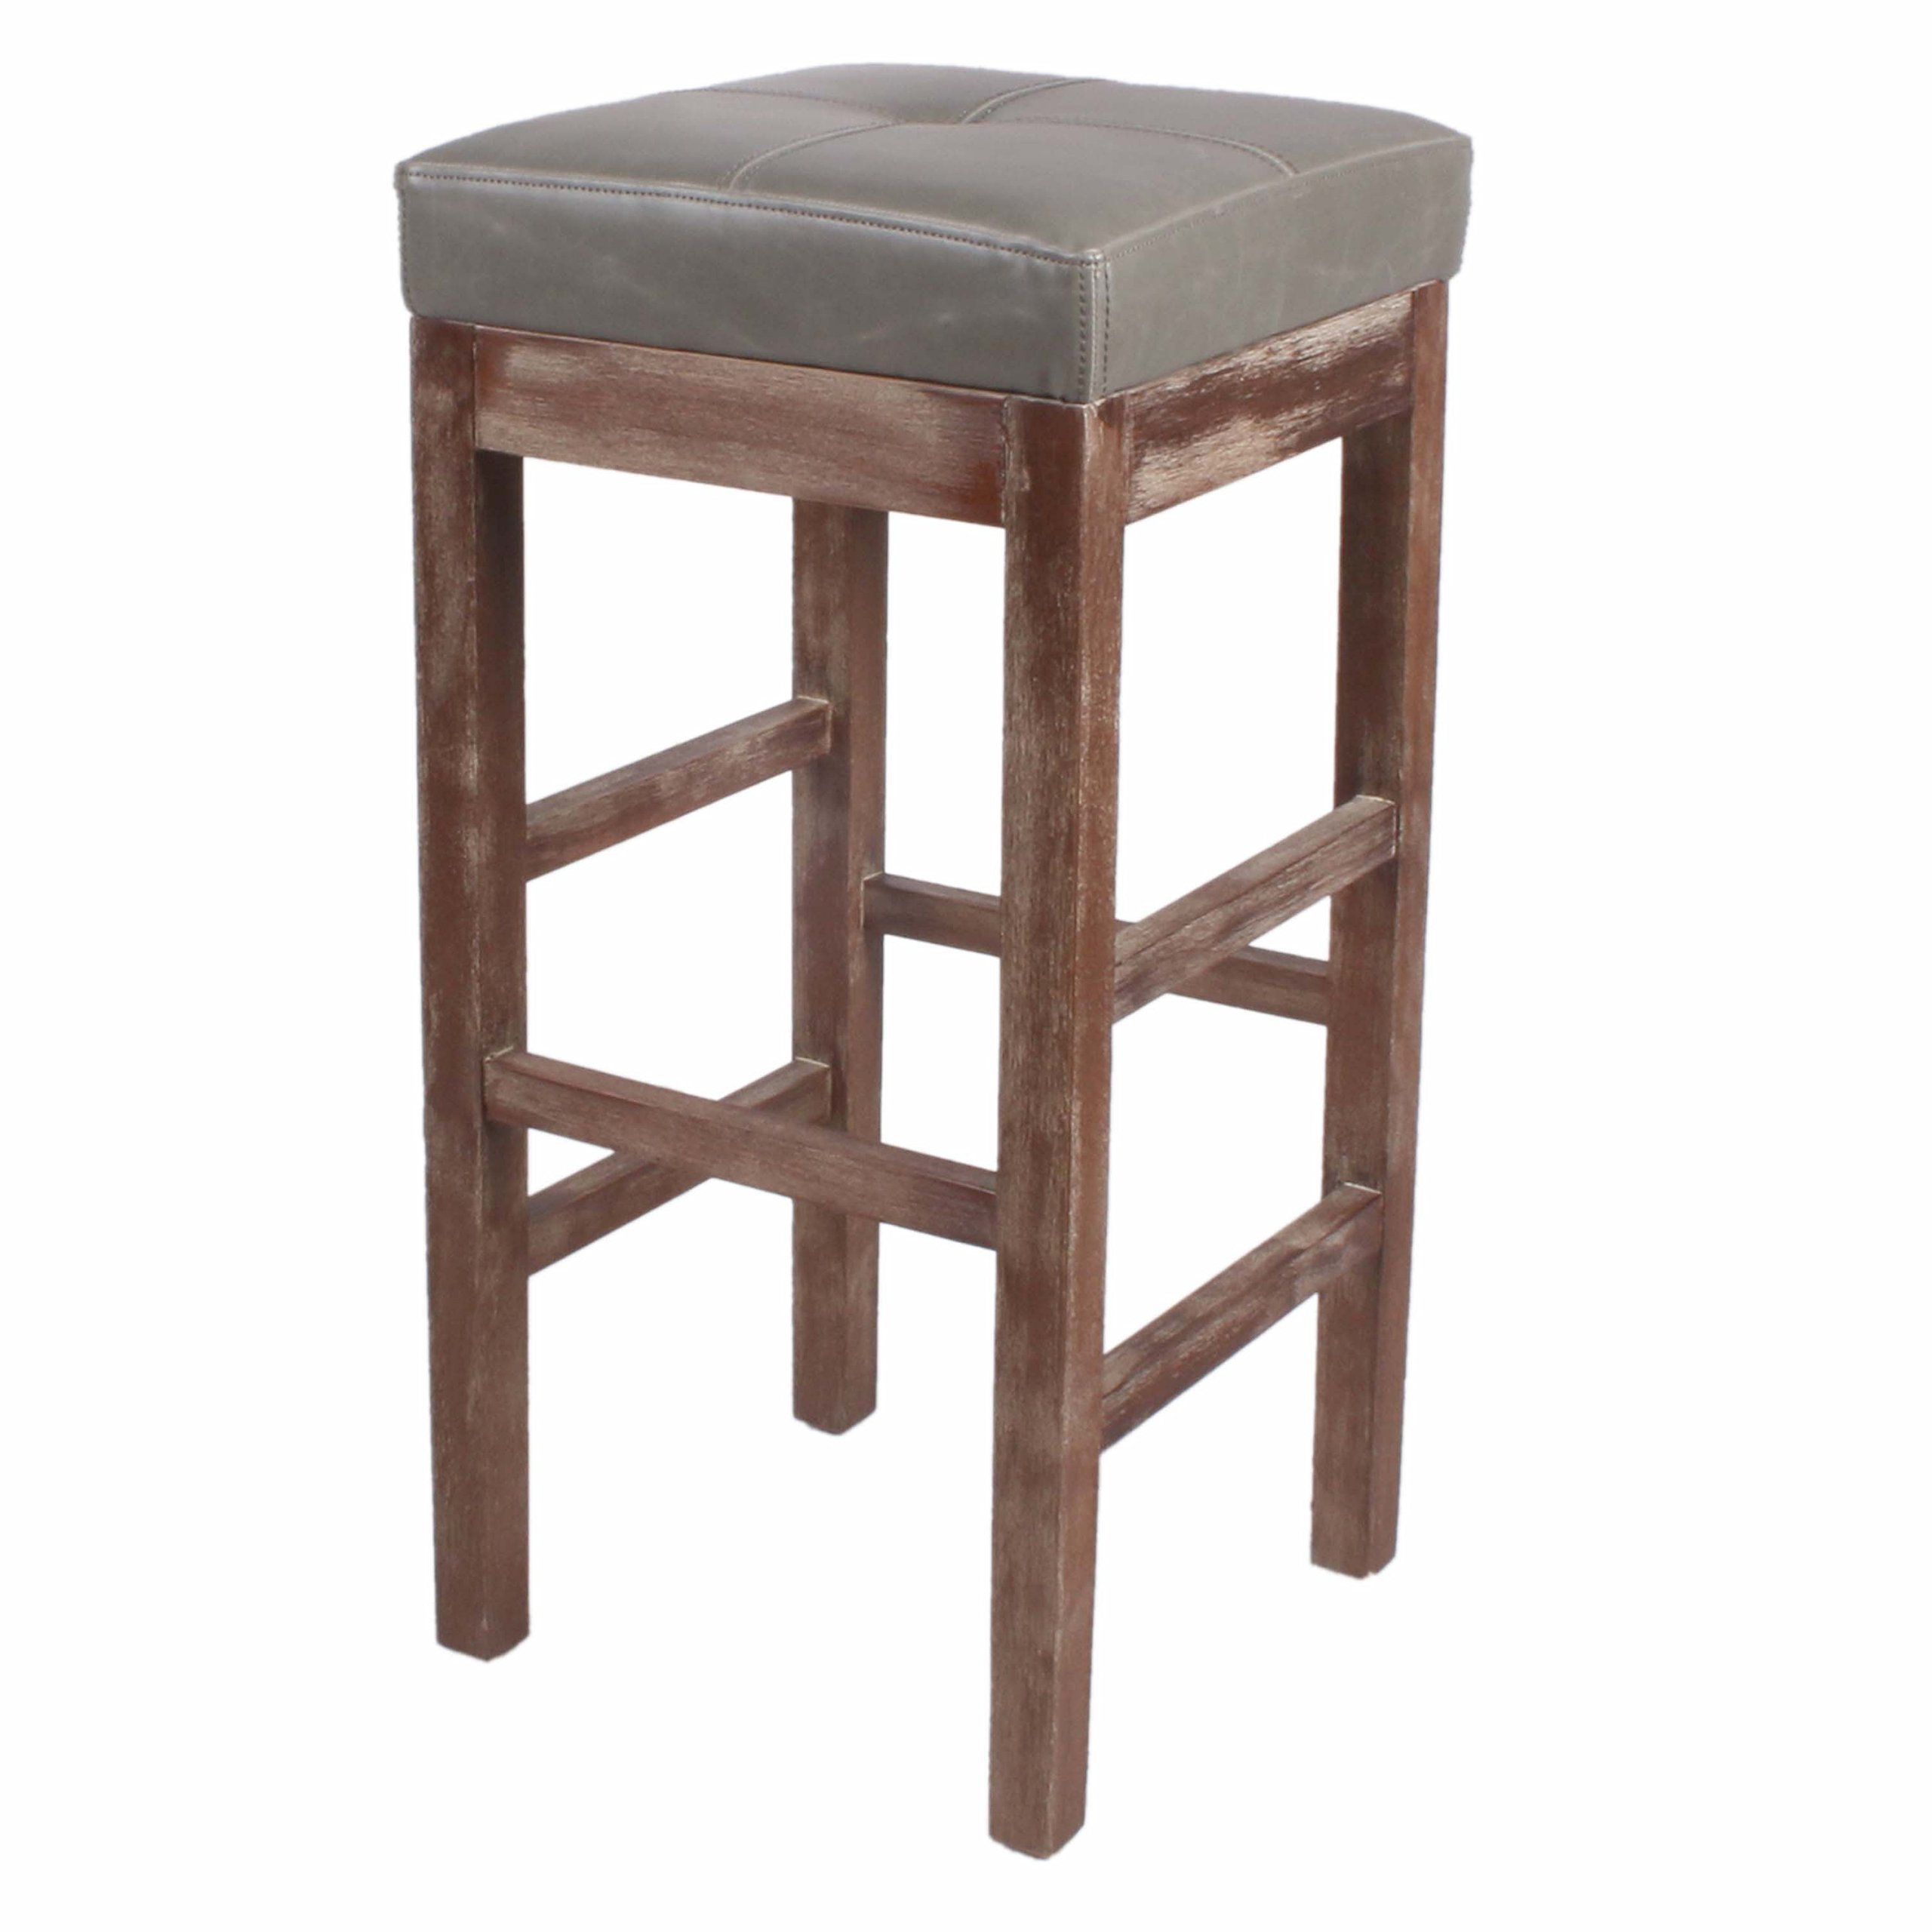 New Pacific Direct Valencia 27'' Bonded Leather Counter Stool, Drift Wood Legs, Vintage Gray by New Pacific Direct (Image #1)